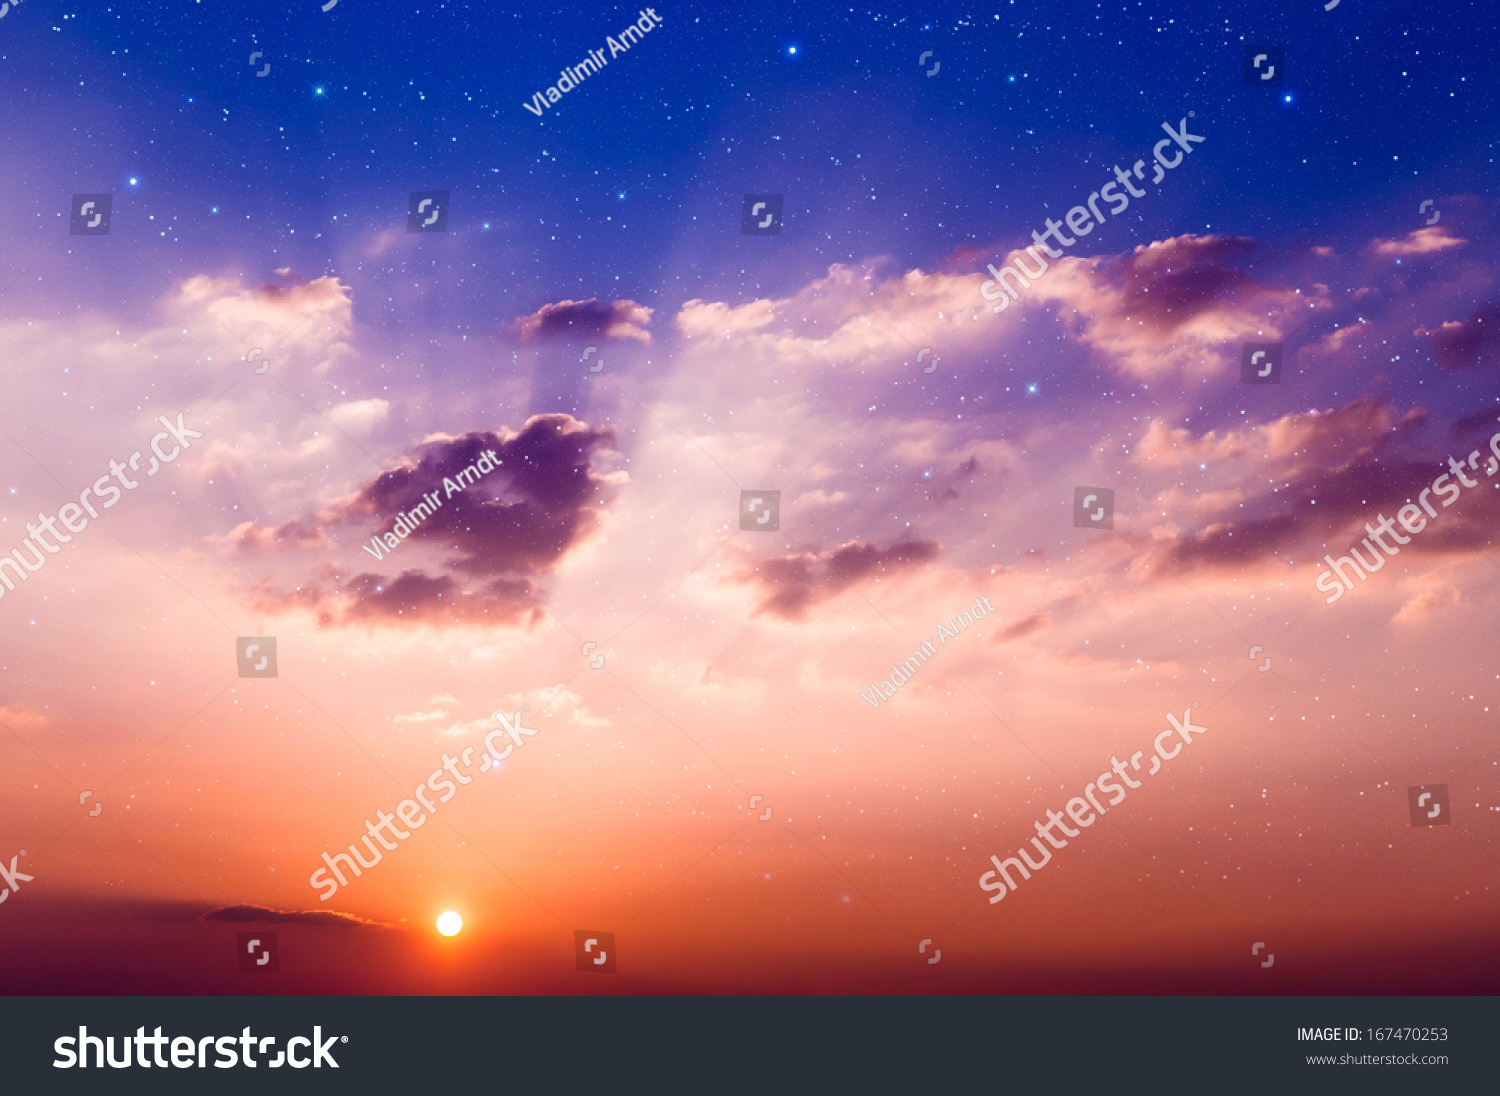 Sunset with sun, clouds and light rays. With stars on background.  #167470253